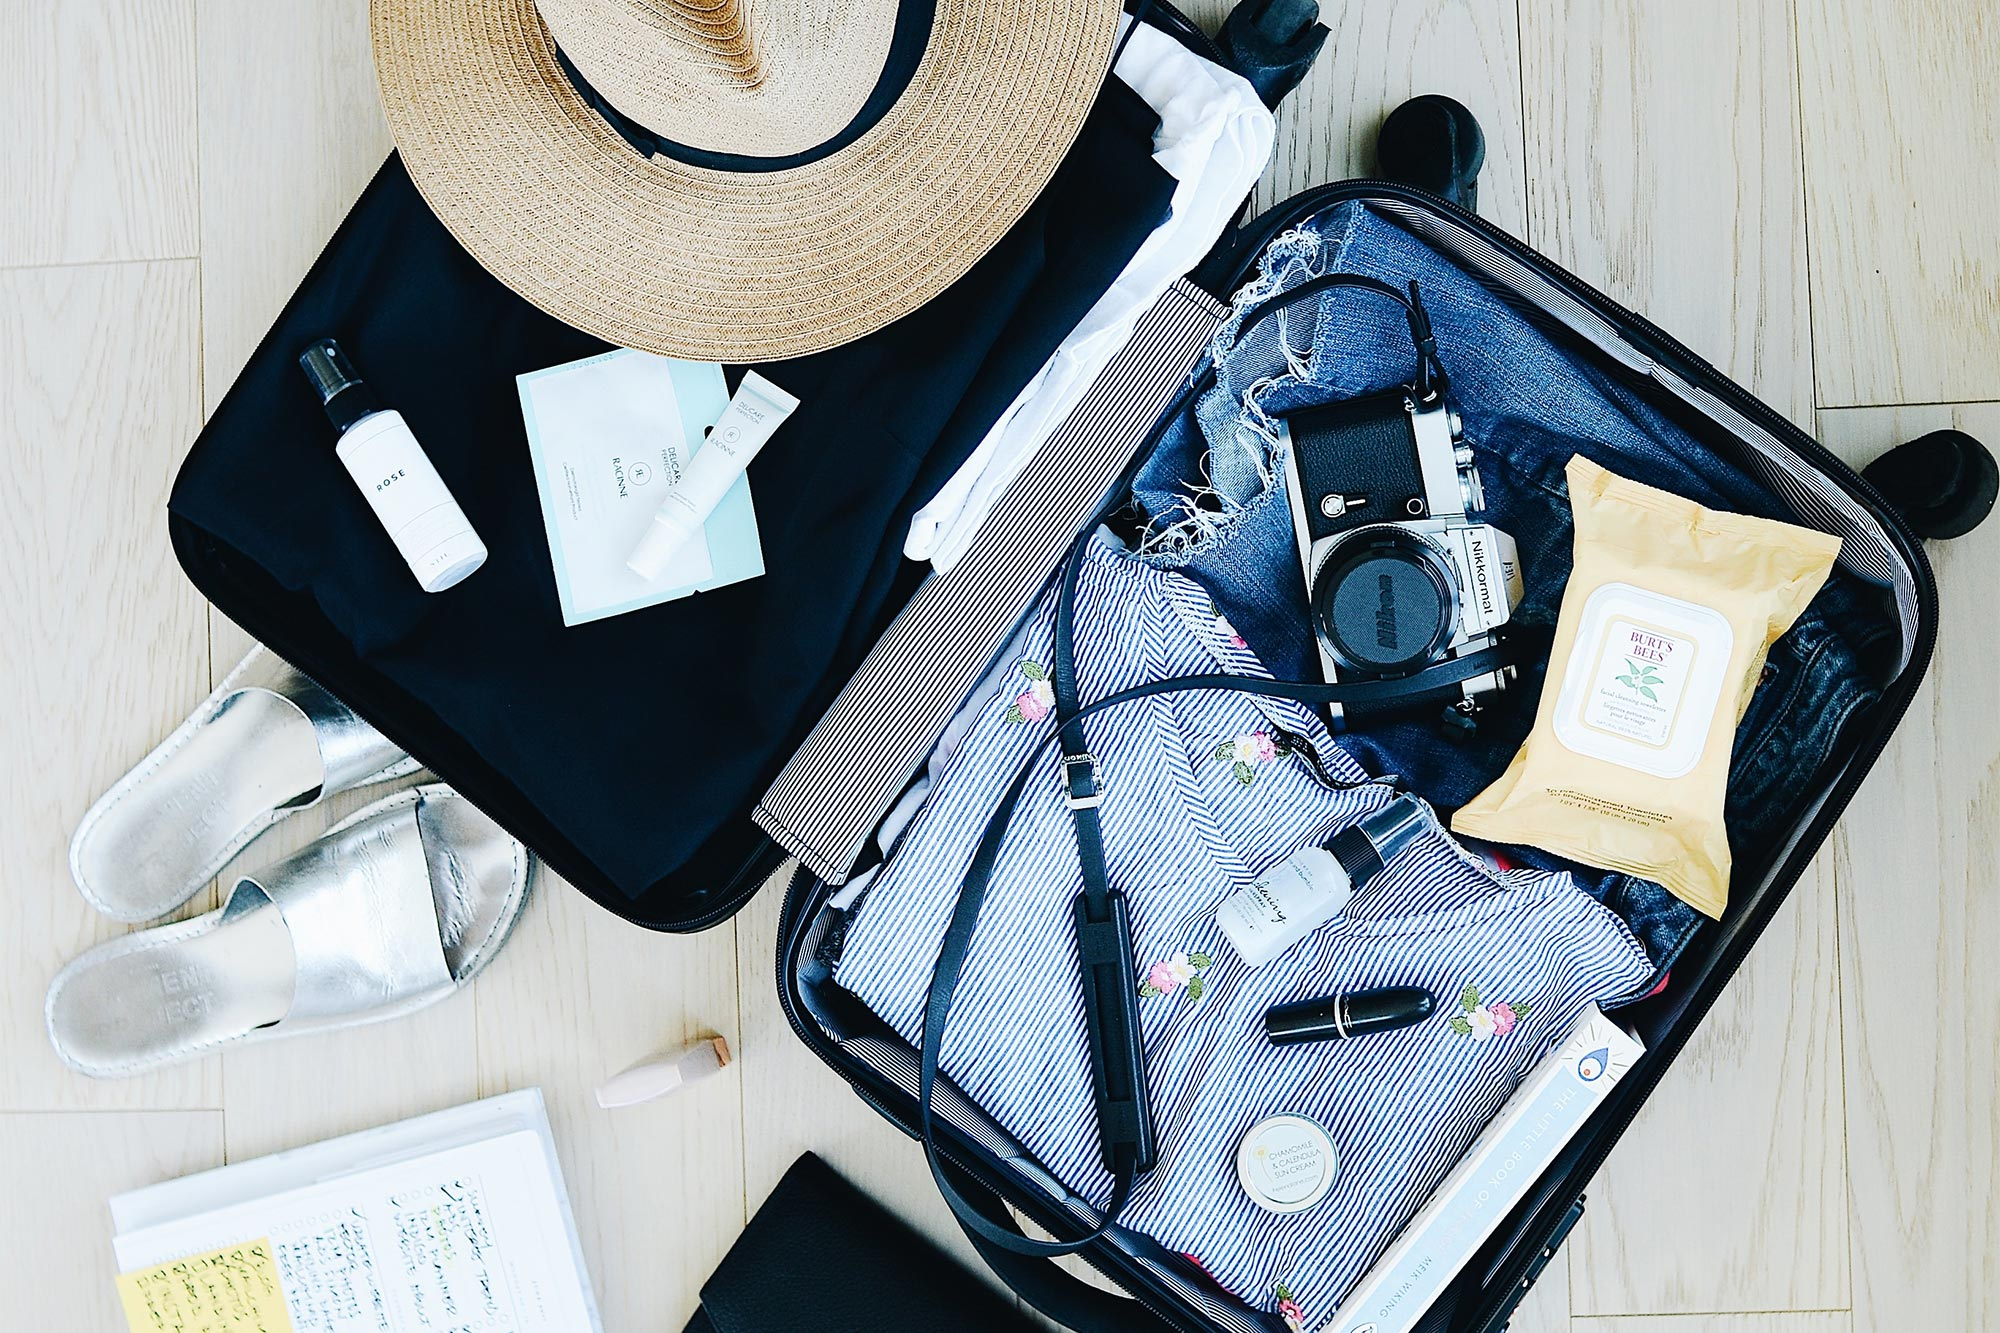 Hacks to Pack a Suitcase